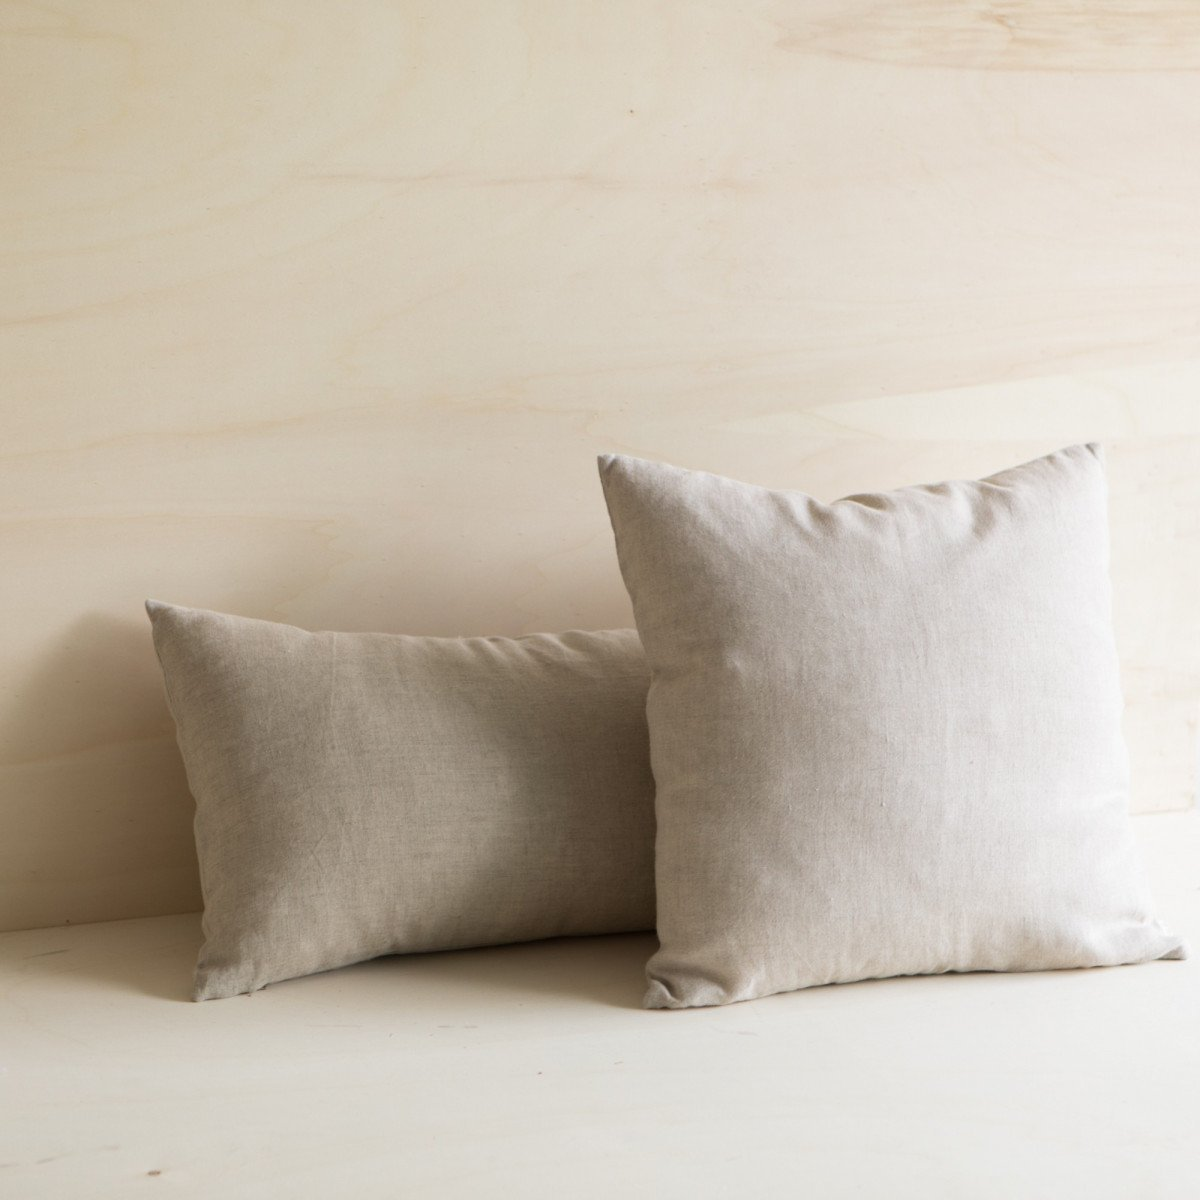 Washed Linen Neutral Natural Taupe Light Brown Square and Long Lumbar Accent Pillow